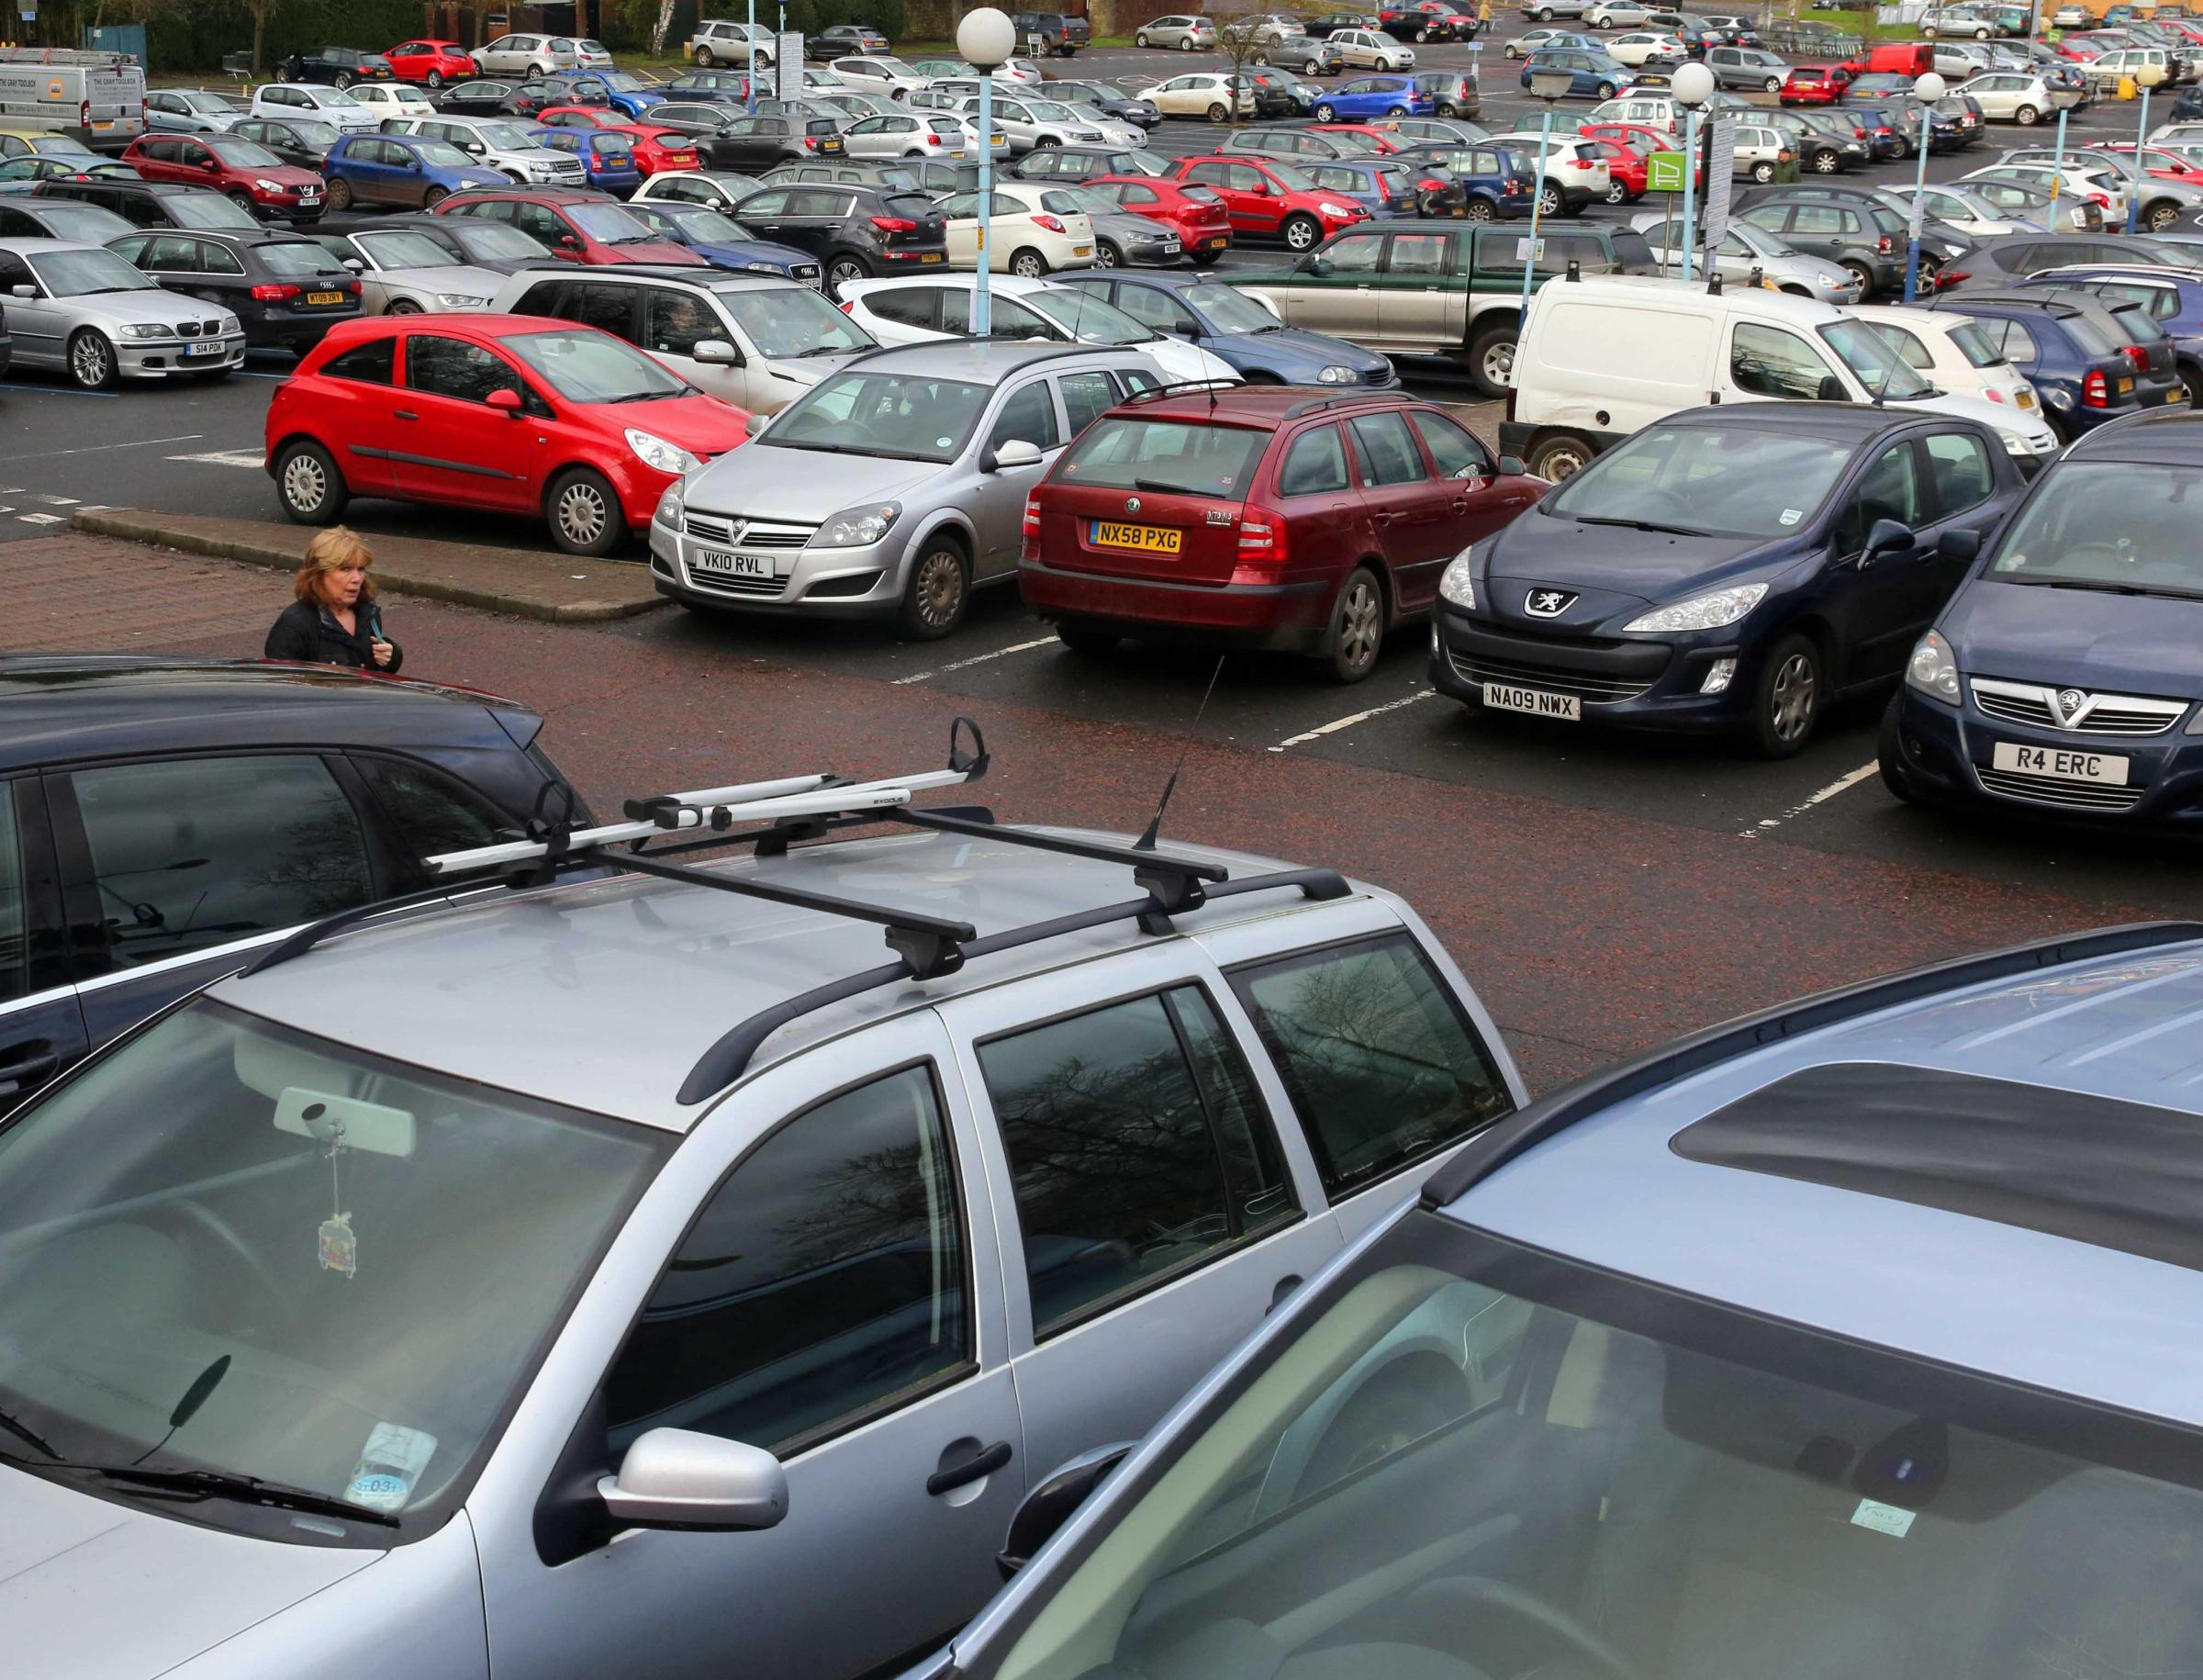 Wentworth car park, in Hexham, is a hotspot for car parking fines.